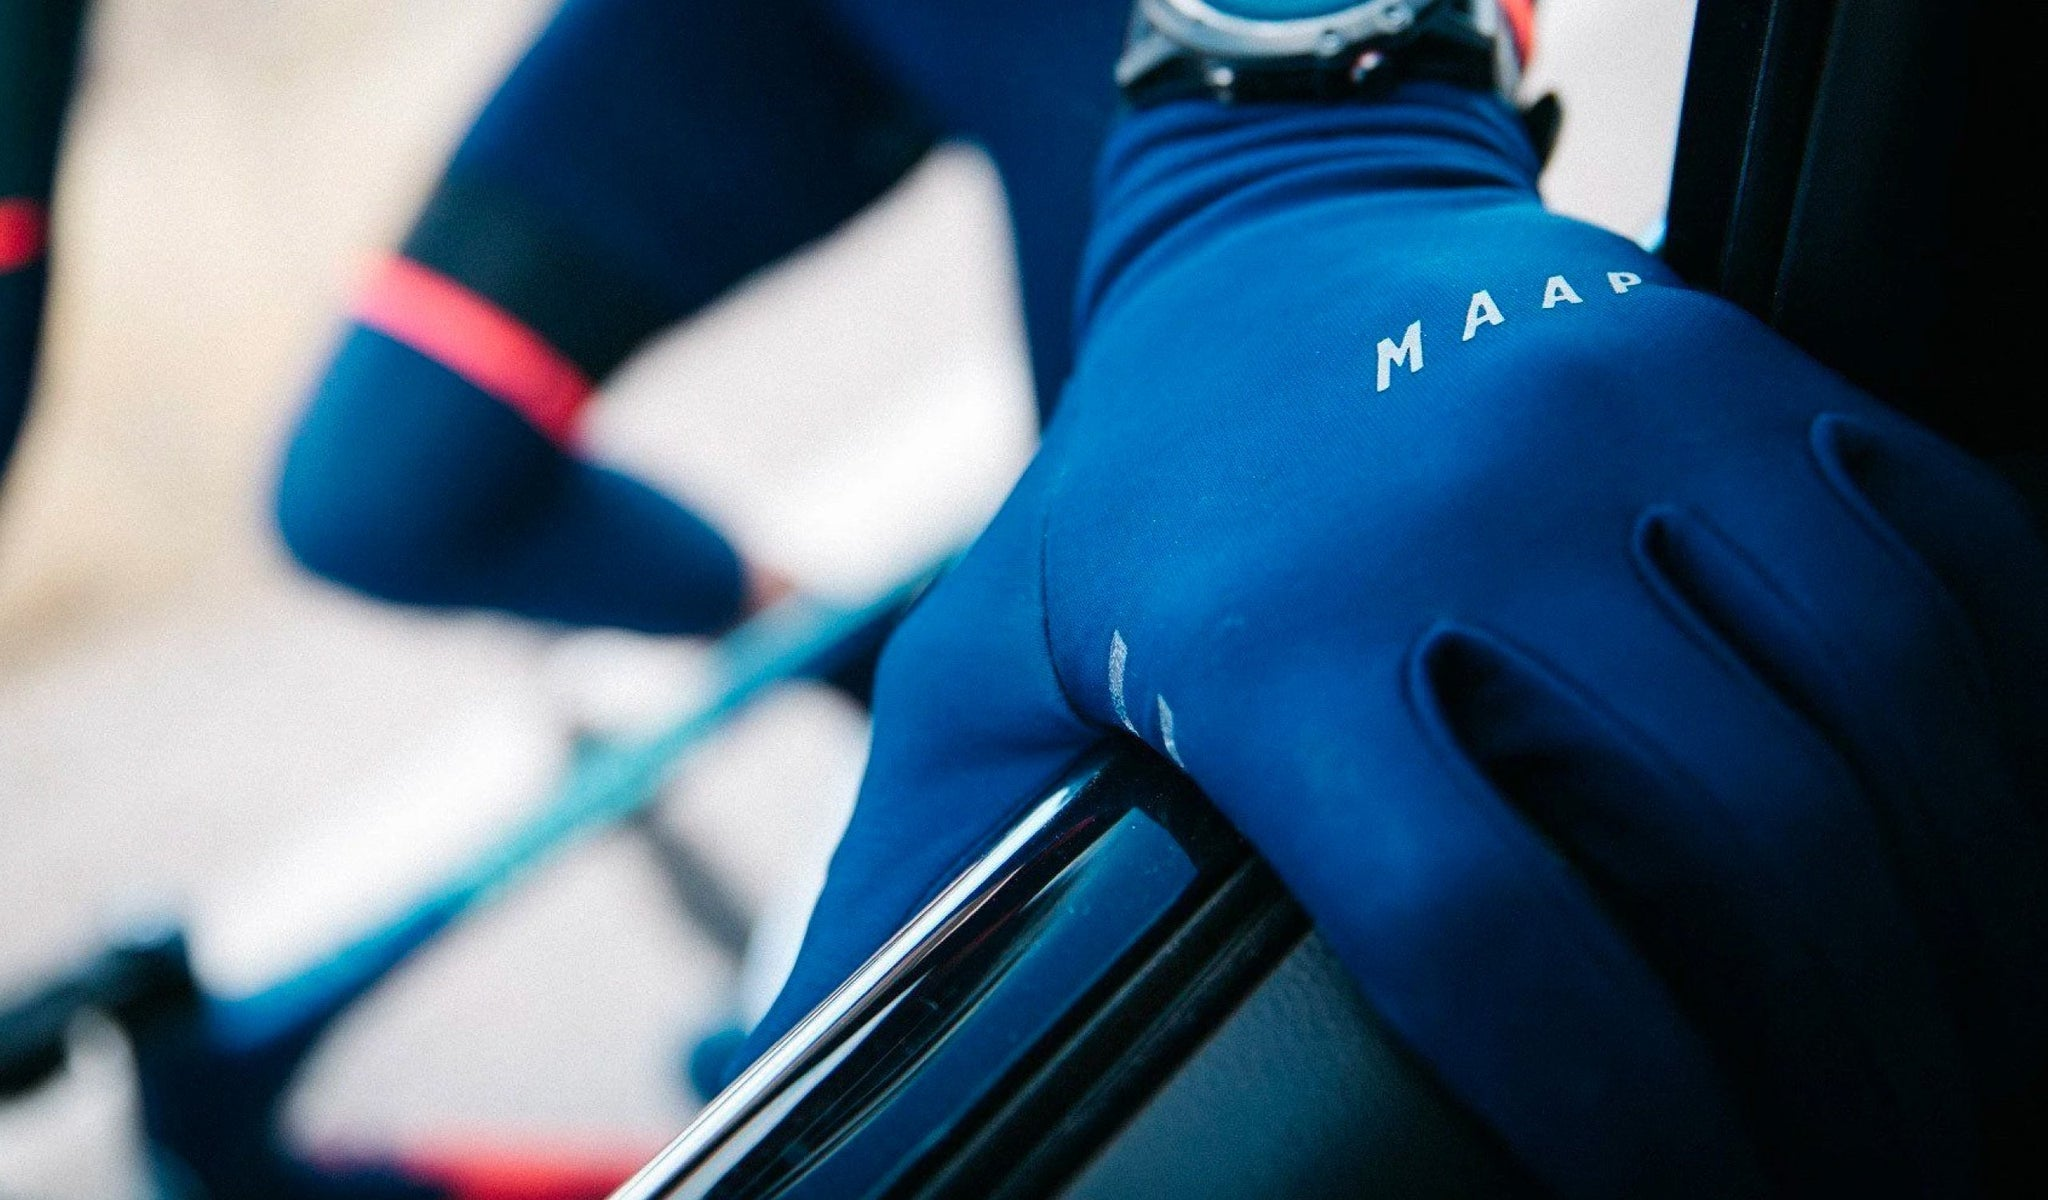 MAAP Base Gloves in Navy are great for cycling in colder mid-season temperatures.